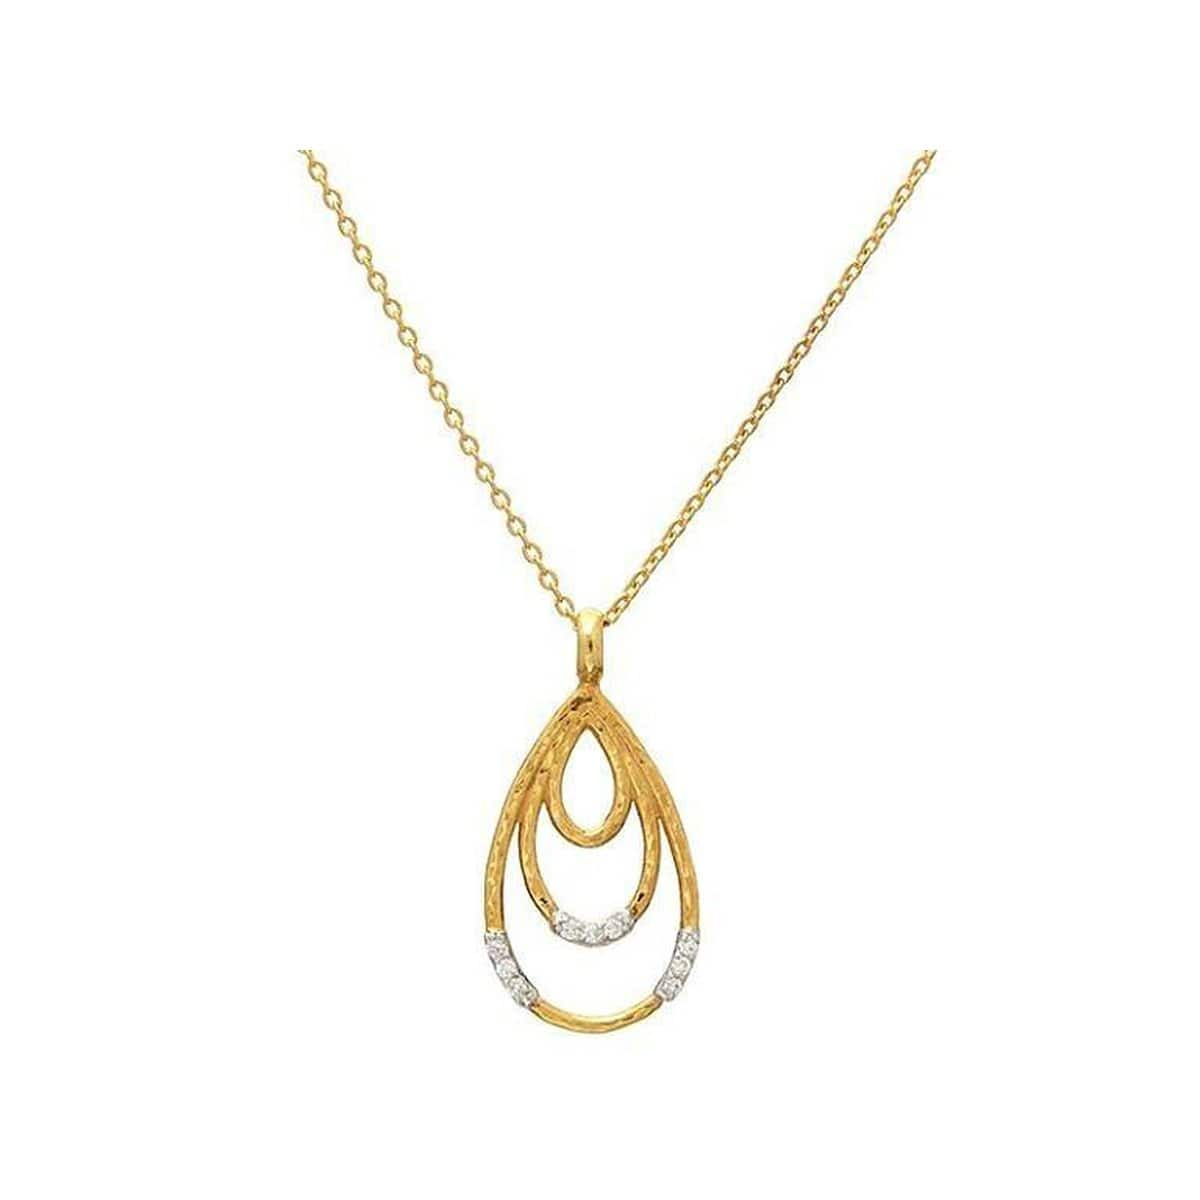 Delicate 24K Gold Diamond Necklace - CHN-3VP3DI-3DR-S-18-GURHAN-Renee Taylor Gallery